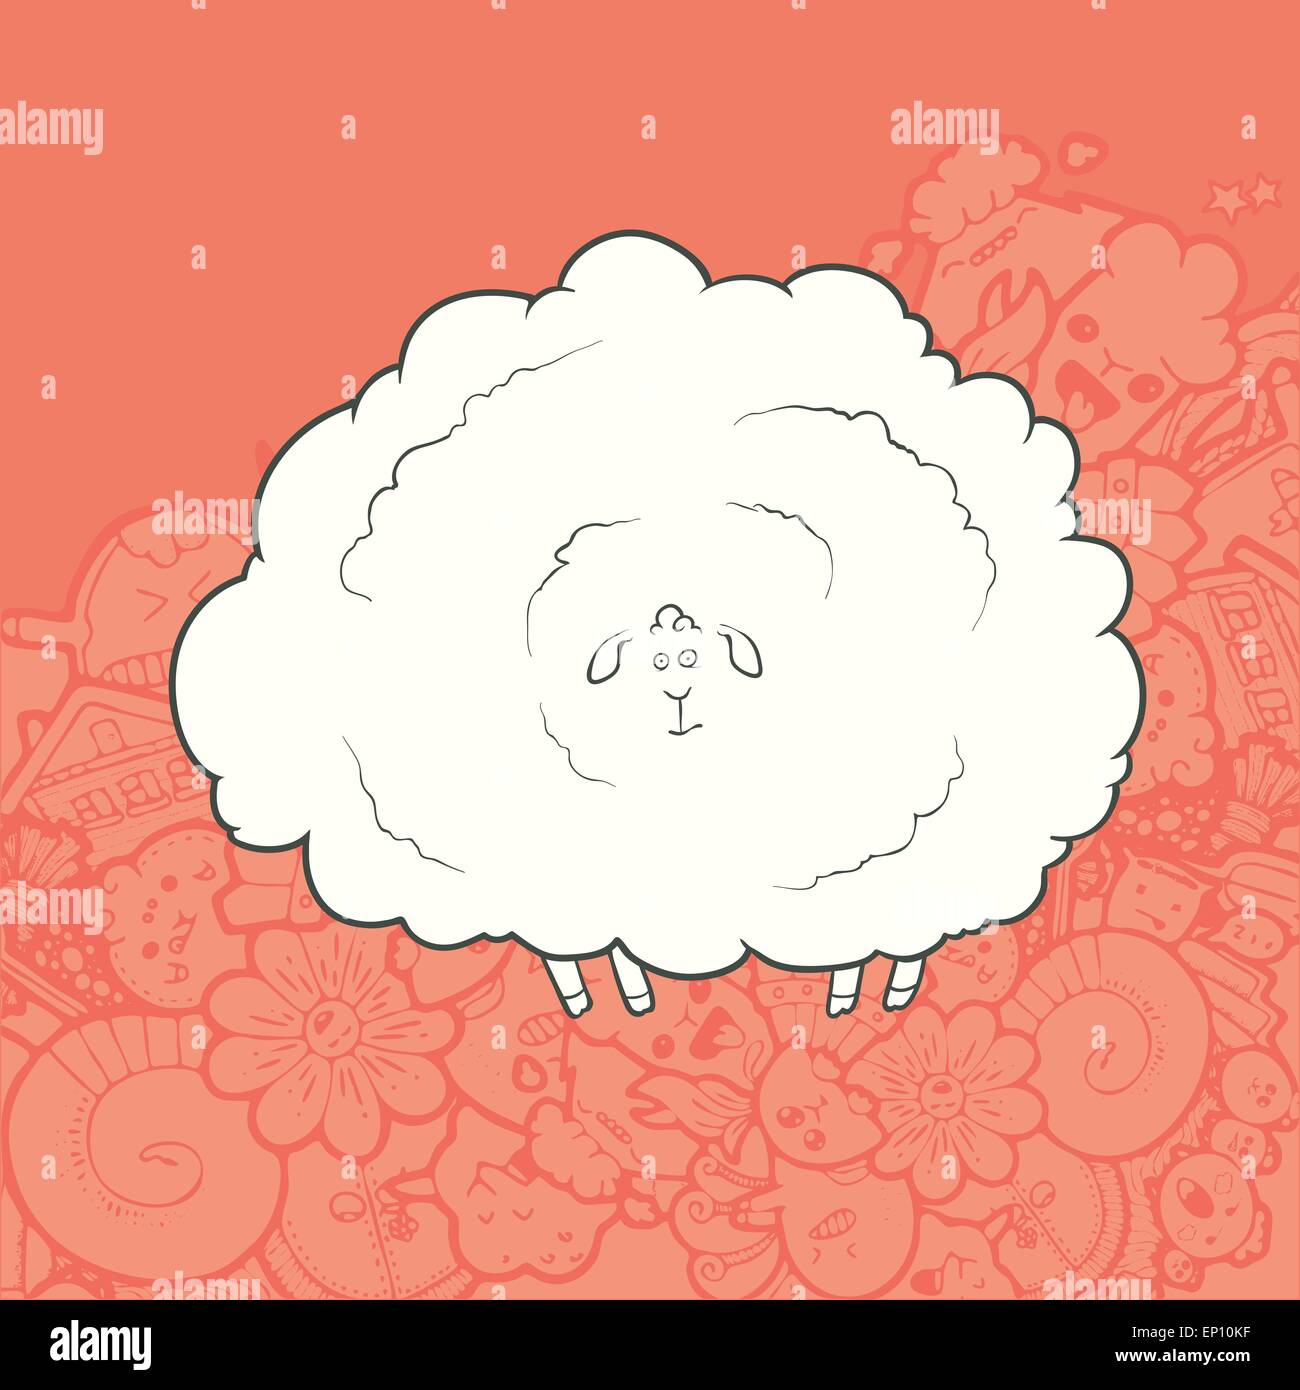 Vector Illustration Cute Hand Drawn Sheep. Greeting card New Year. Stock Vector